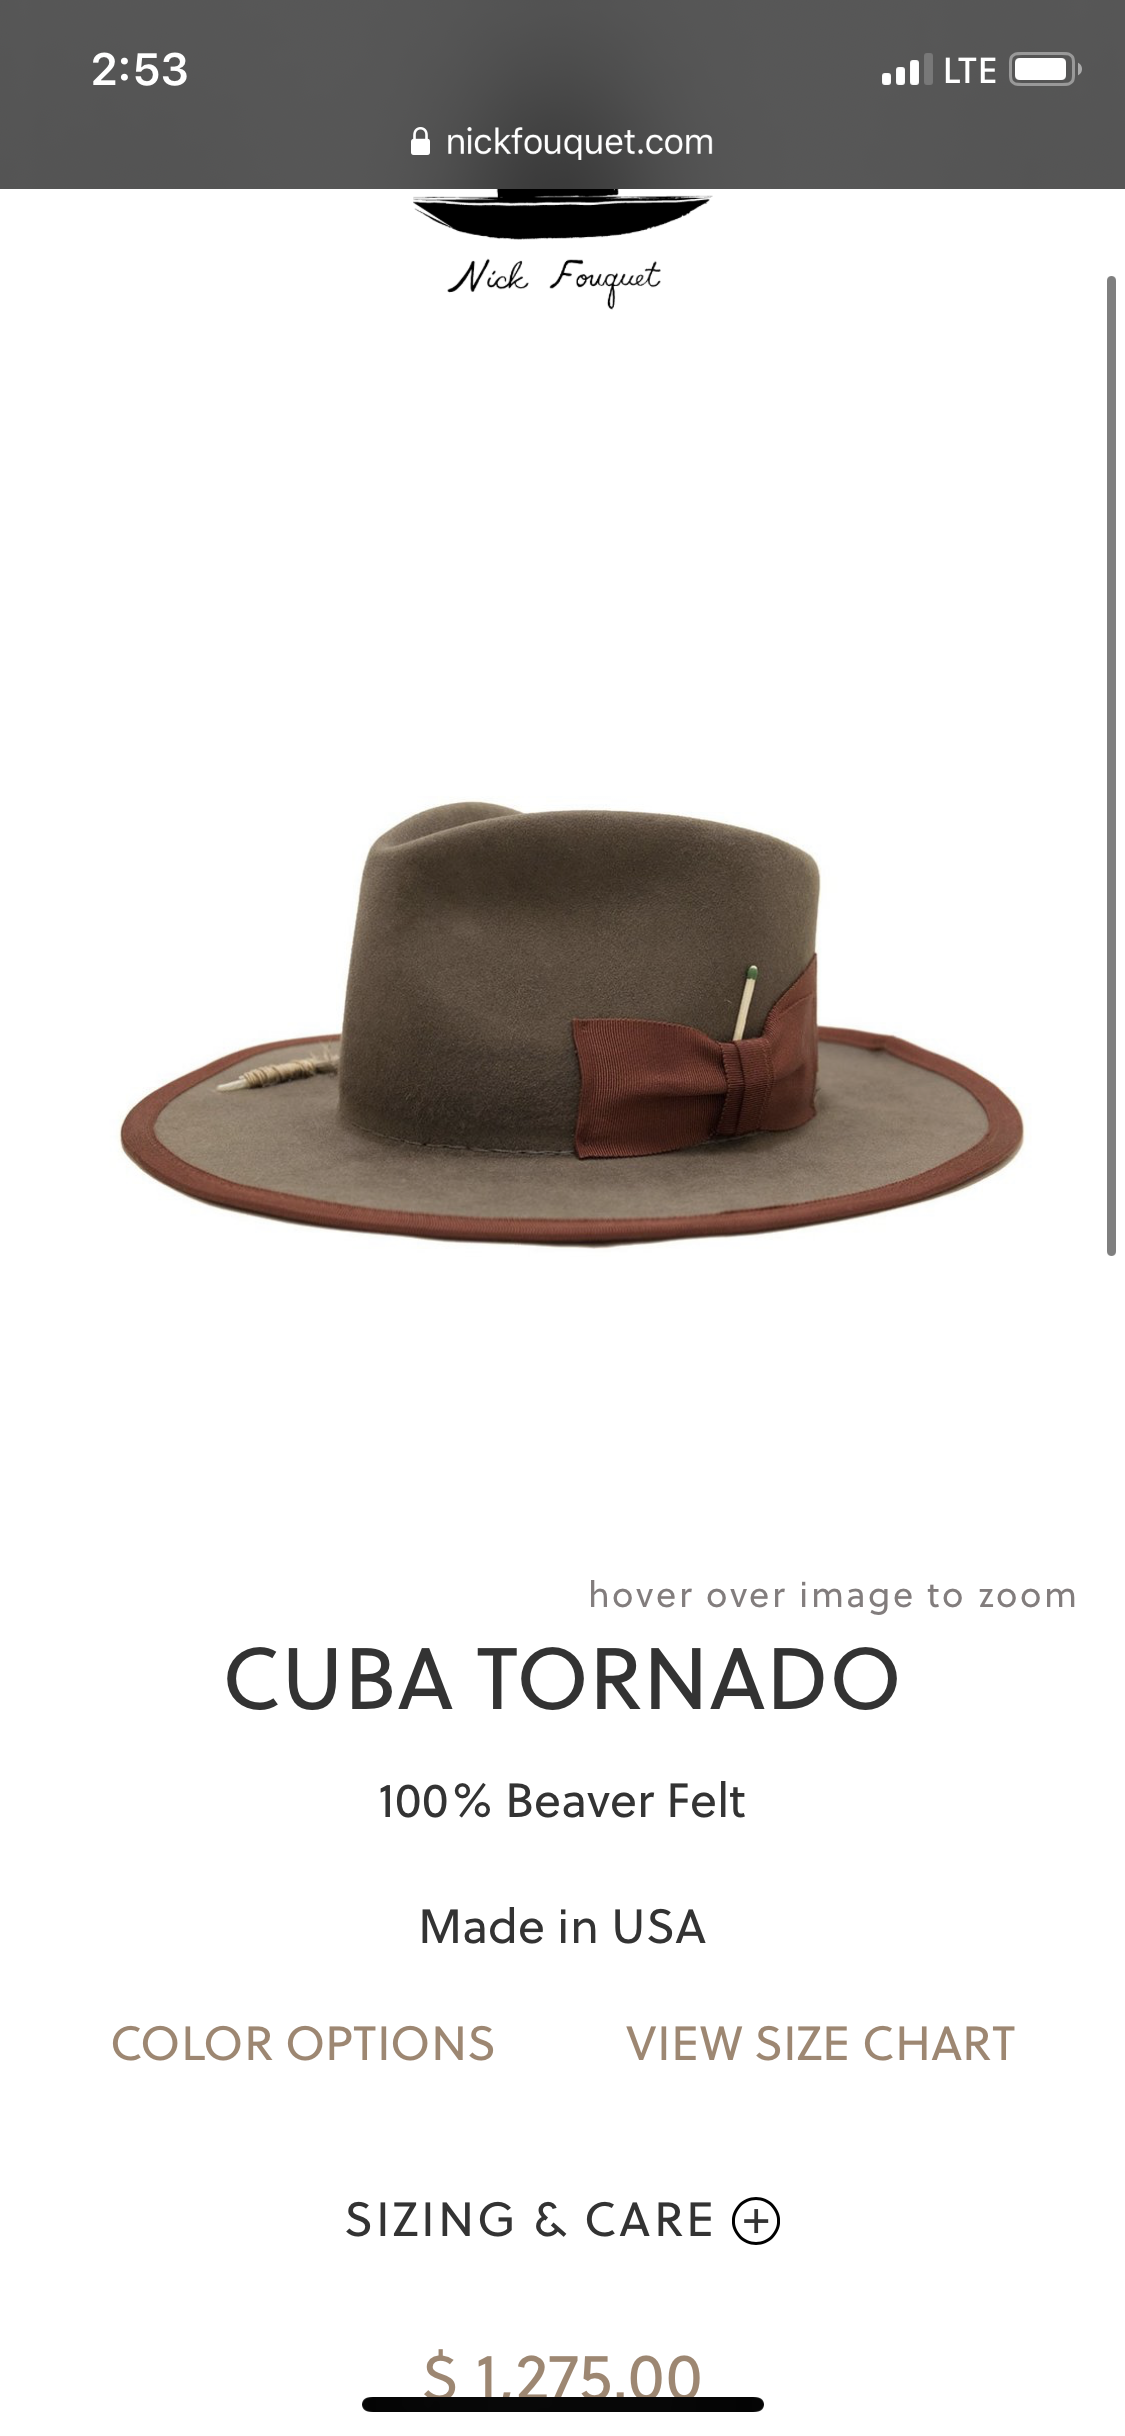 Image of NICK FOUQUET HAT